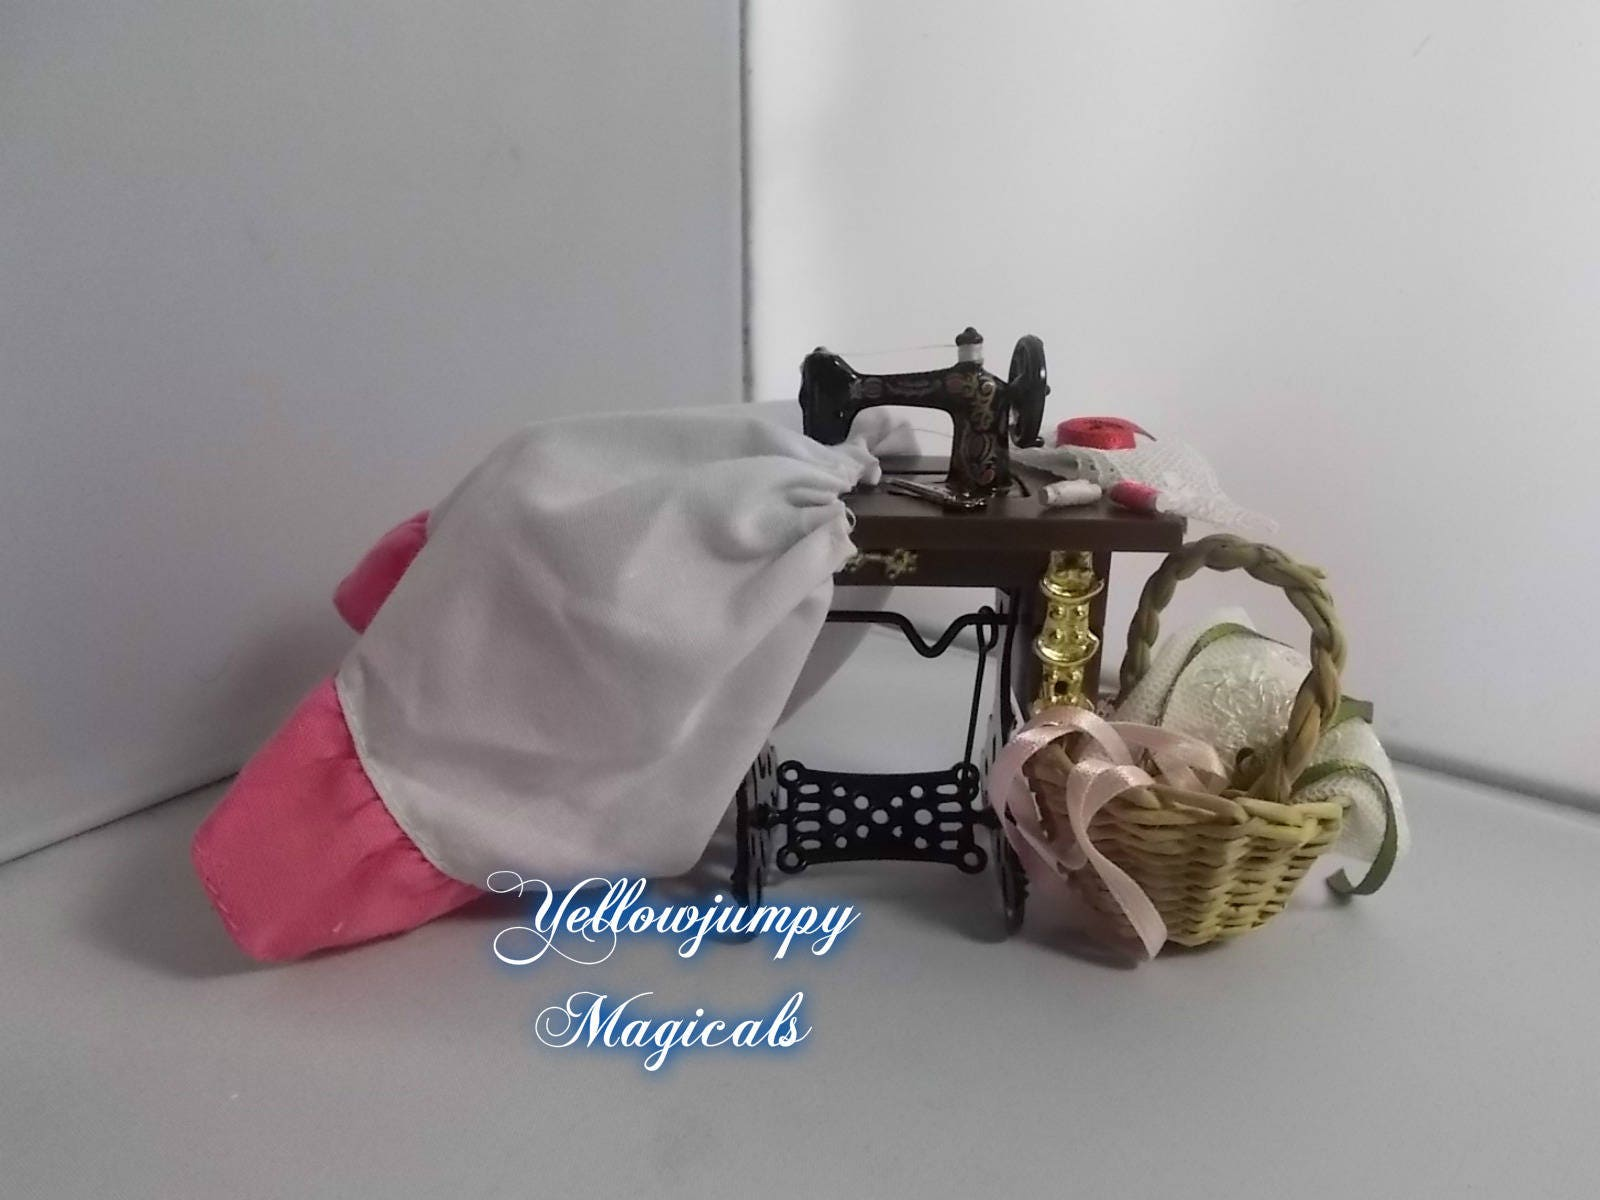 12th Miniature dollhouse sewing machine with accessories